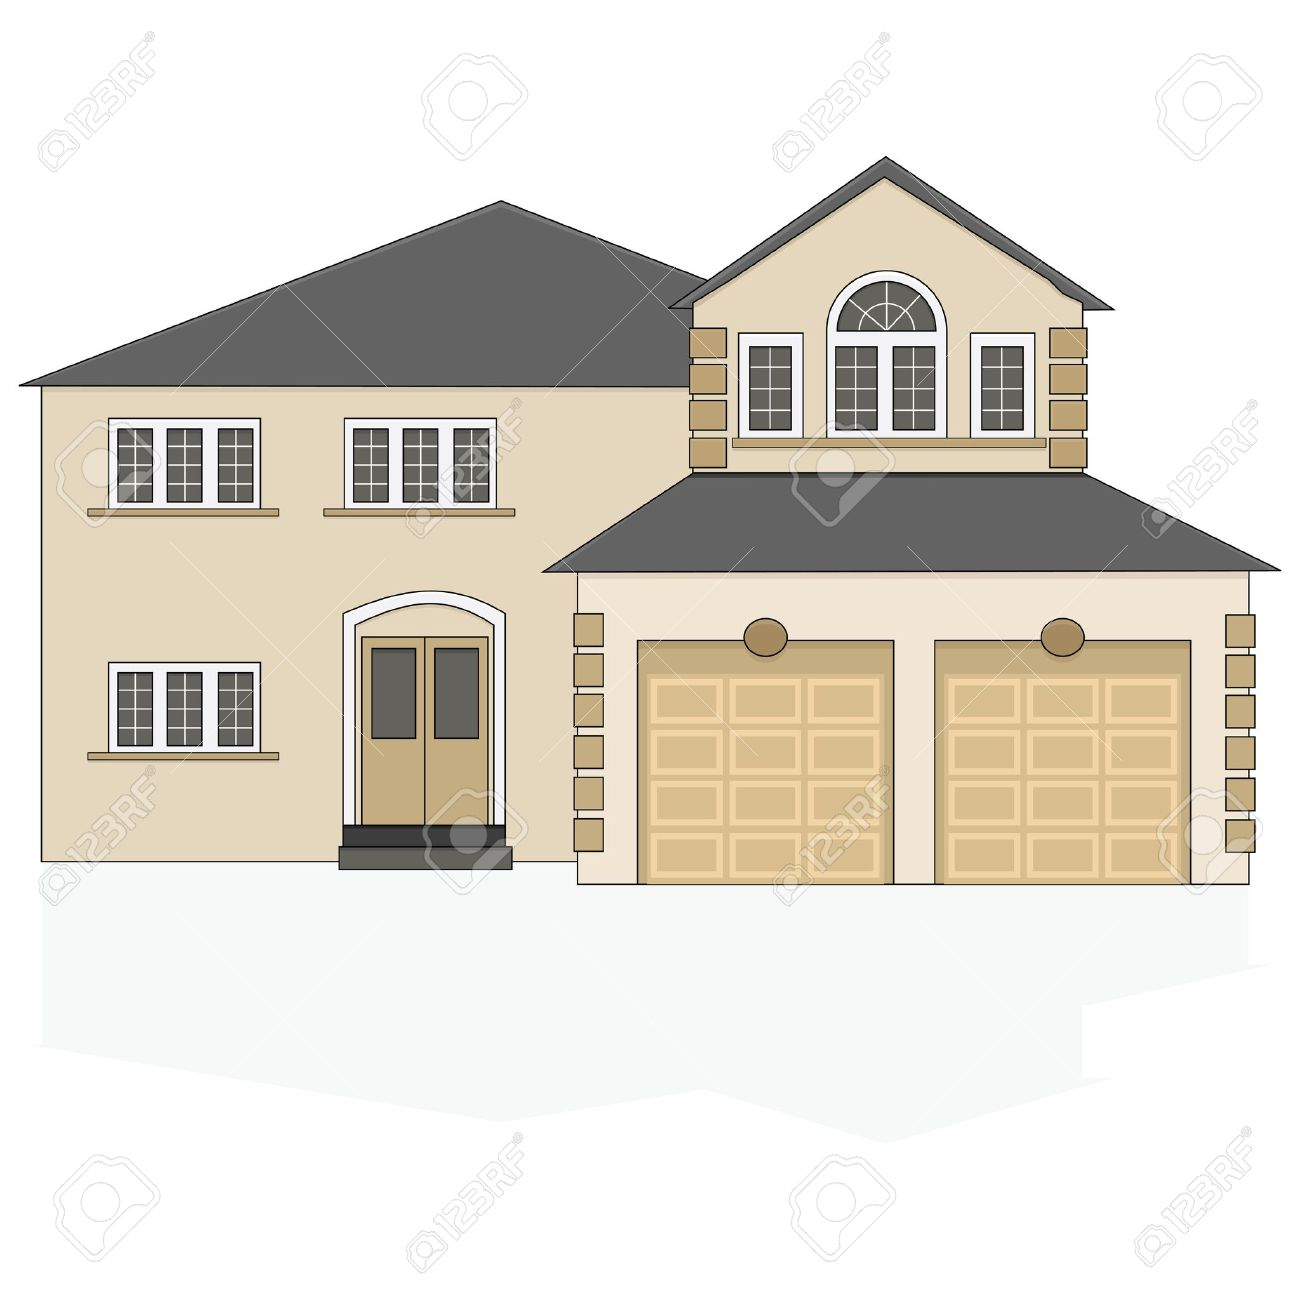 Hosue clipart big house Large Illustration clipart Of house